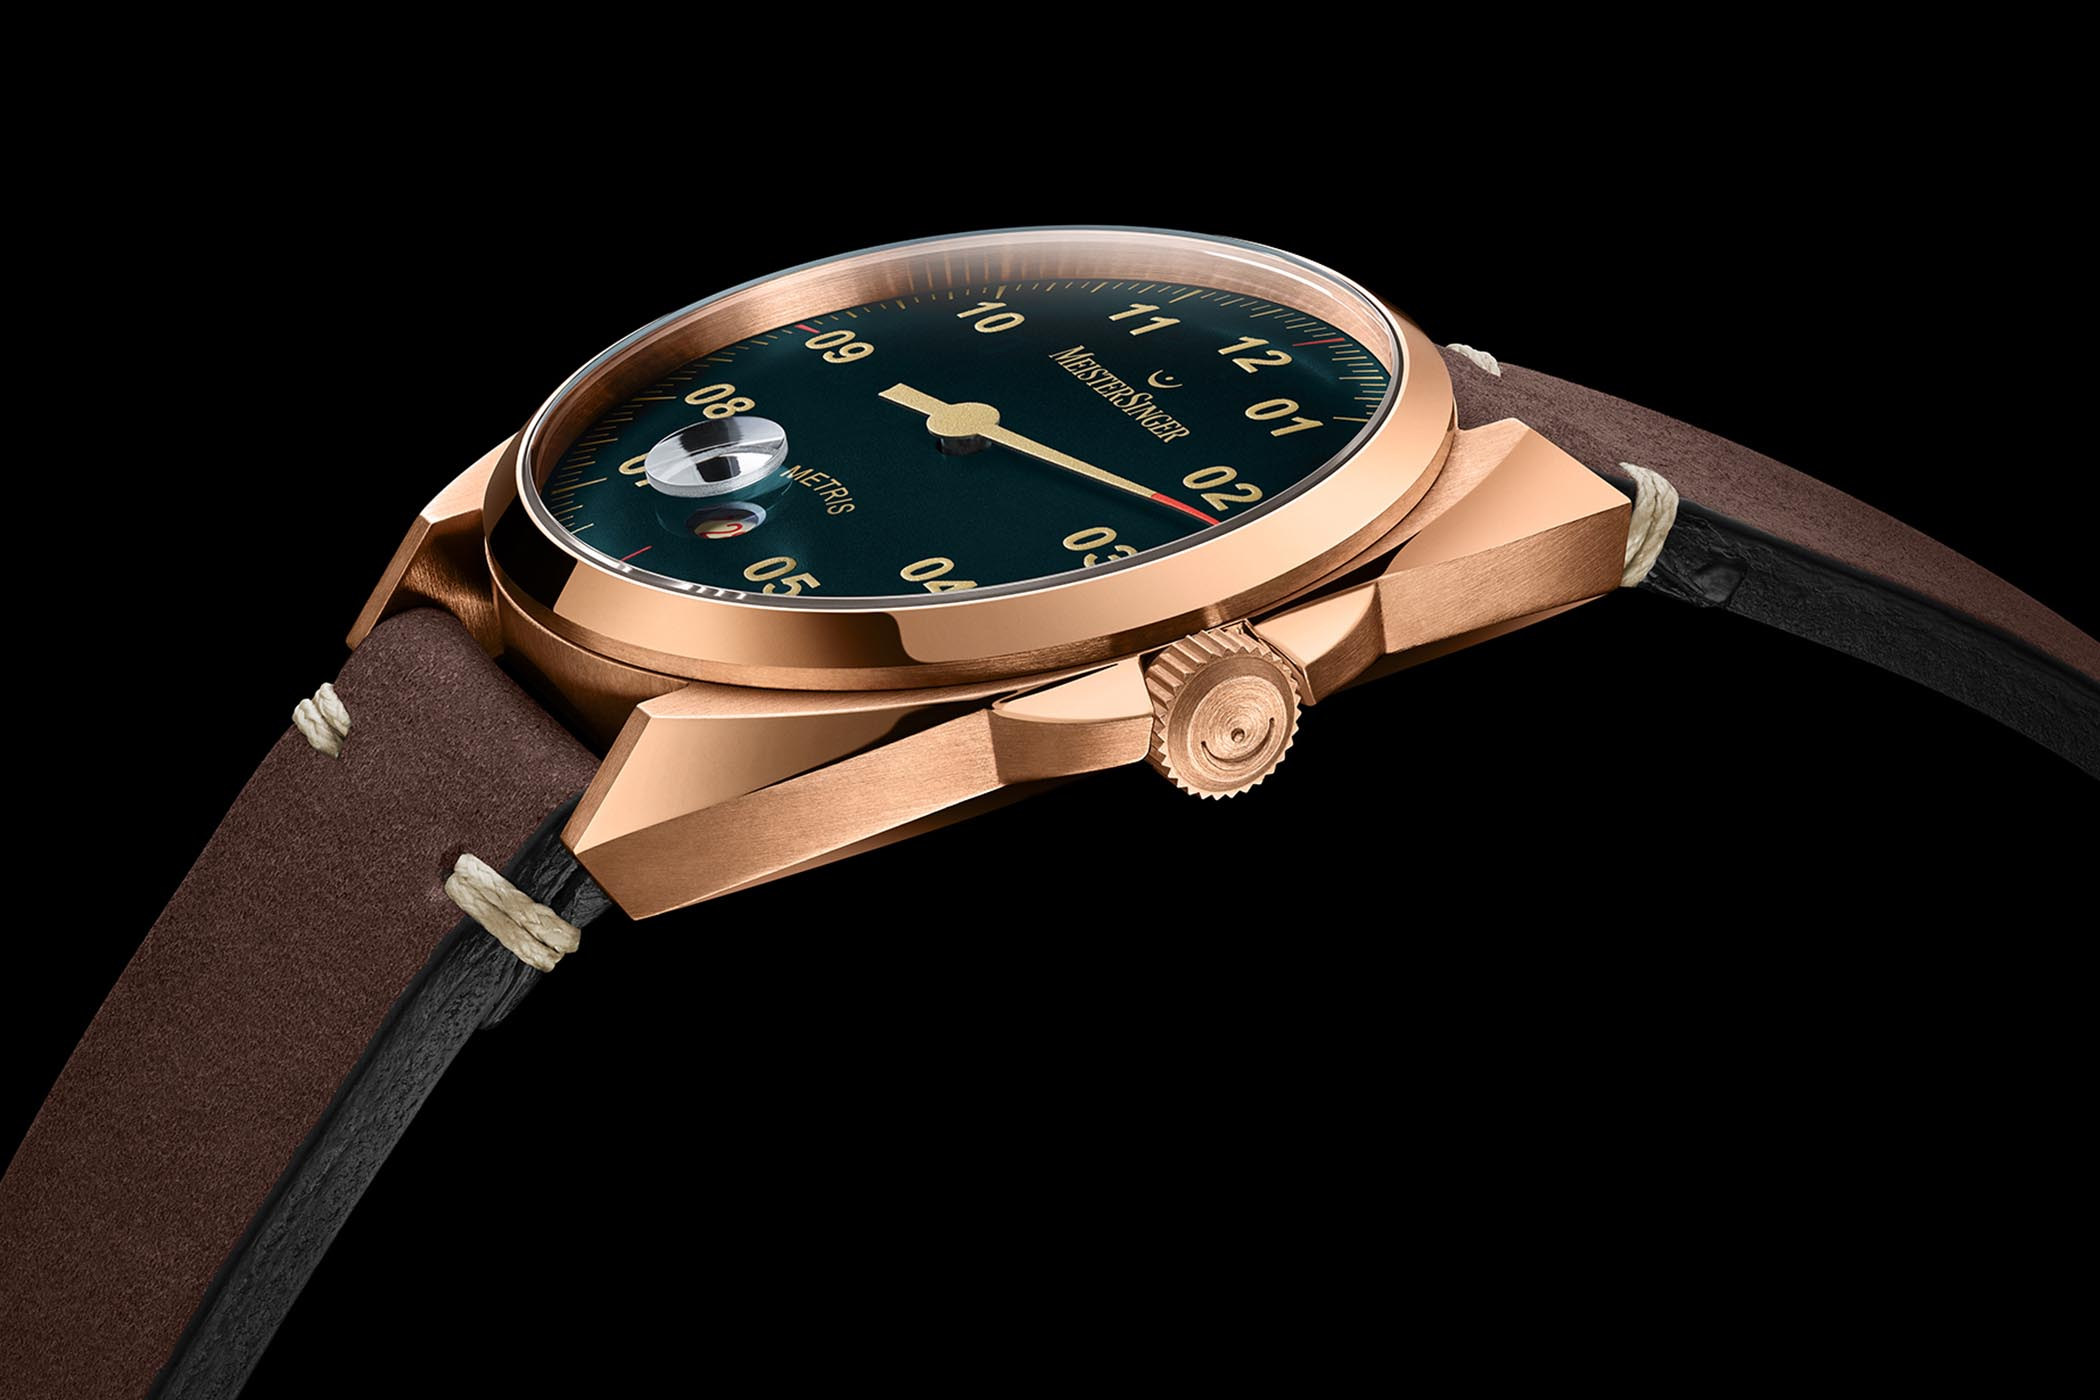 Baselworld 2019 - MeisterSinger Bronze Editions No. 03, Perigraph and Metris - 5